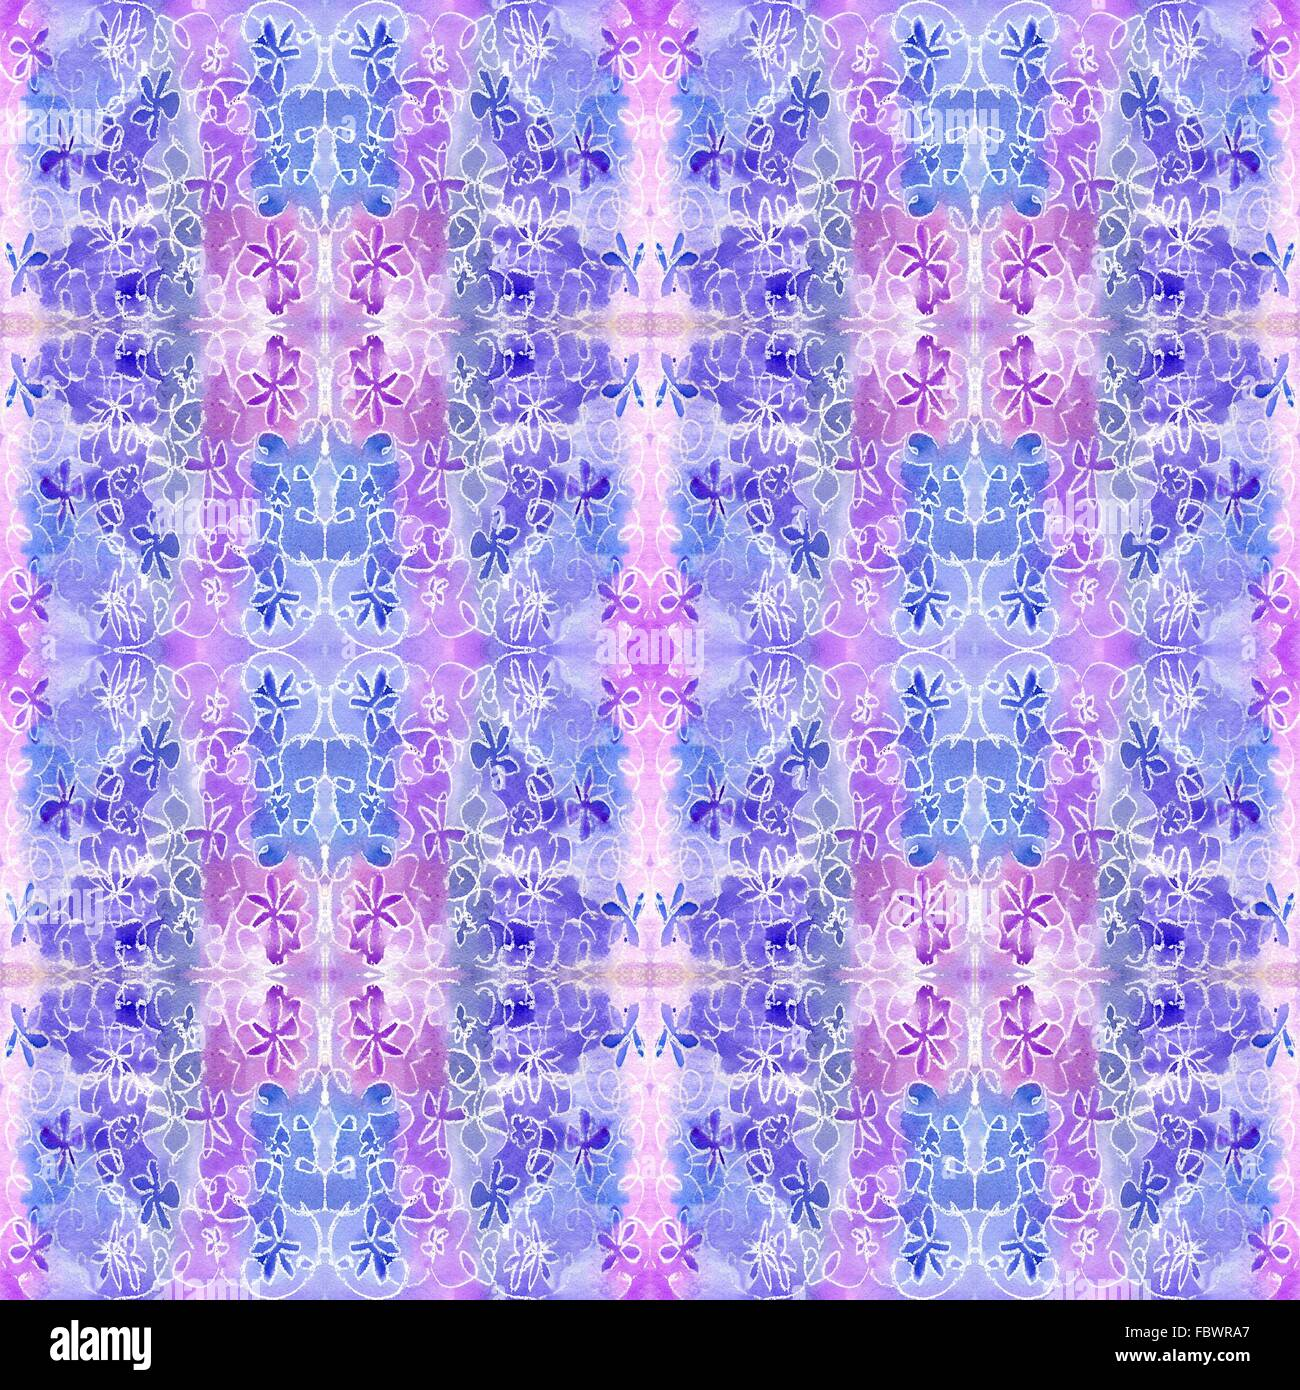 watercolor lilac pattern repetition - Stock Image